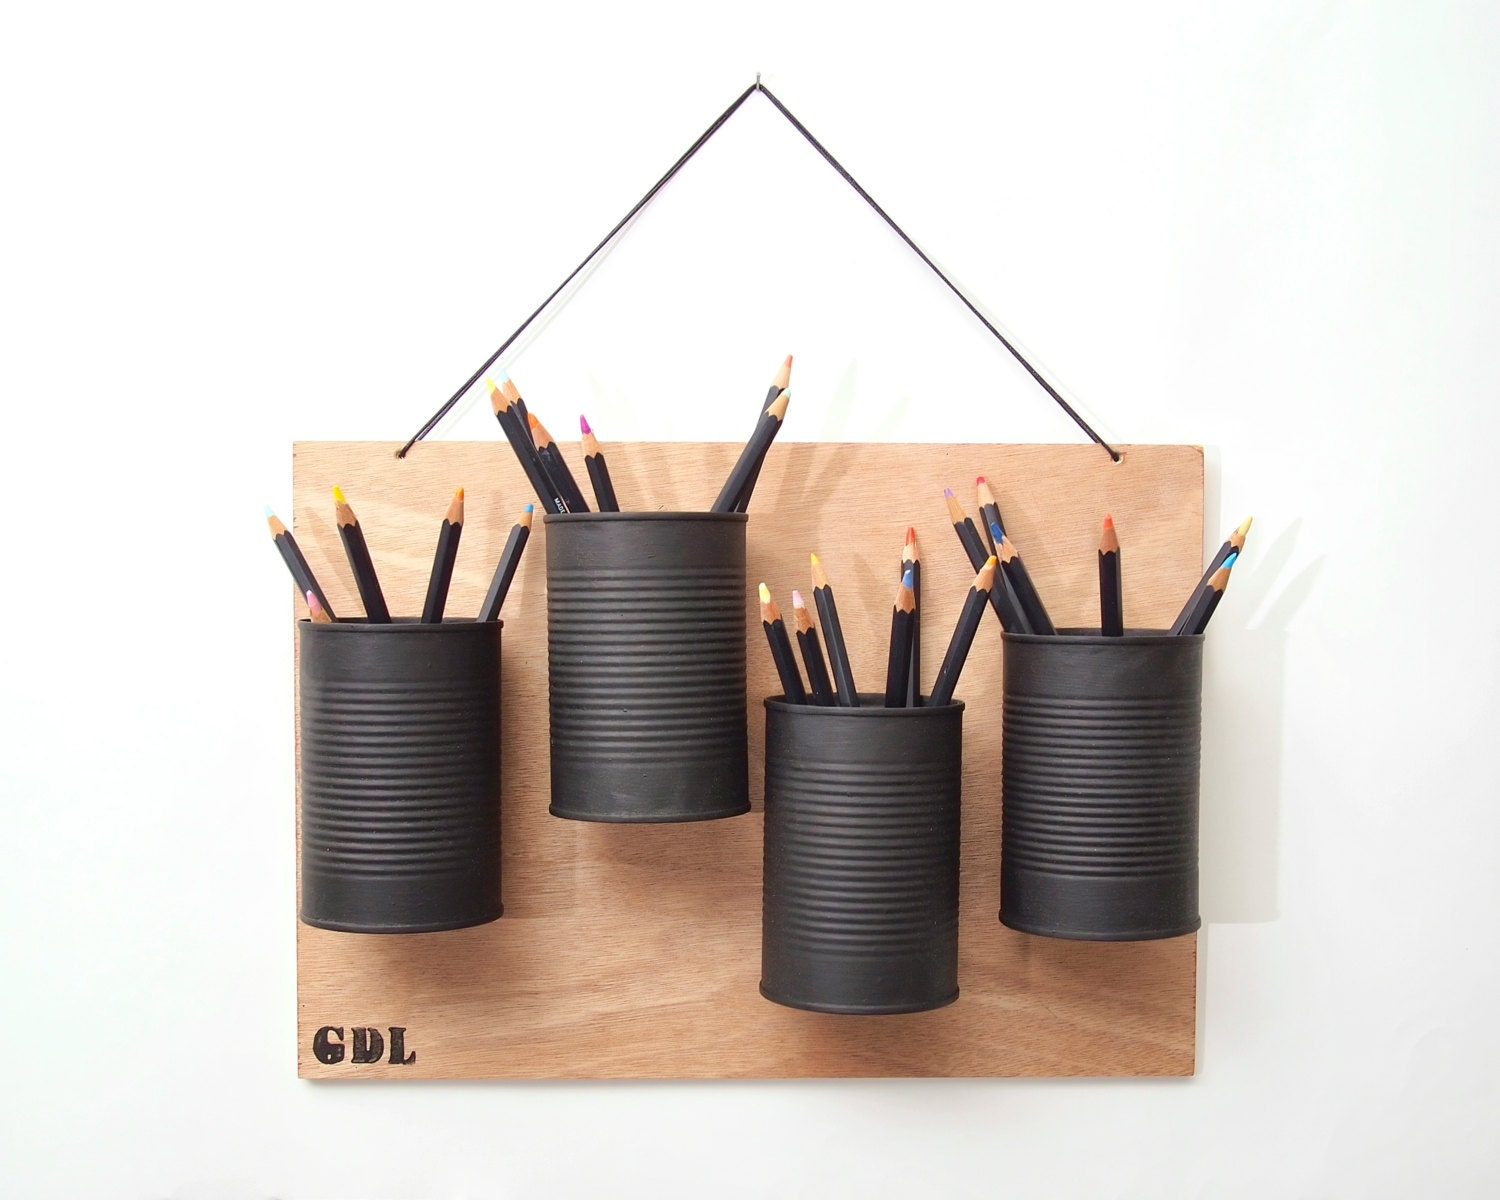 Sale 25 Off Quatro Hanging Pencil Holder: diy pencil holder for desk